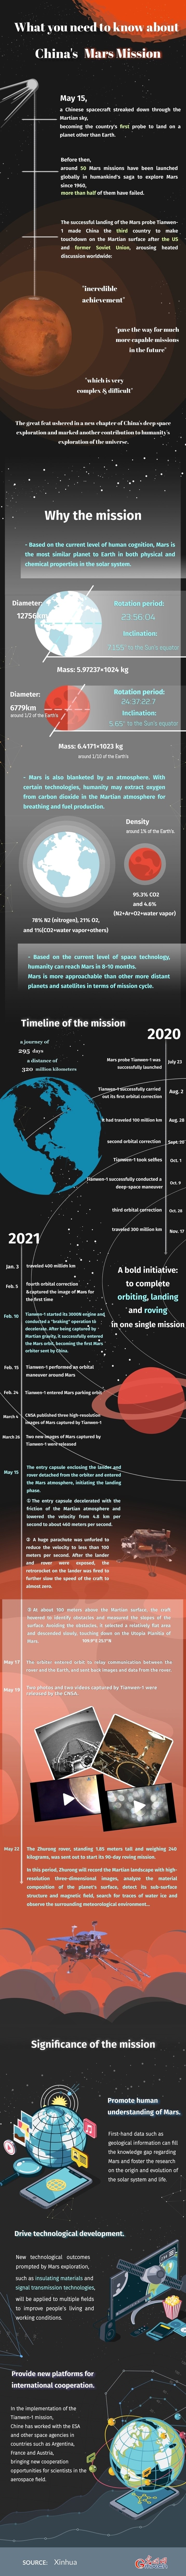 Infographic: what you need to know about China's Mars mission